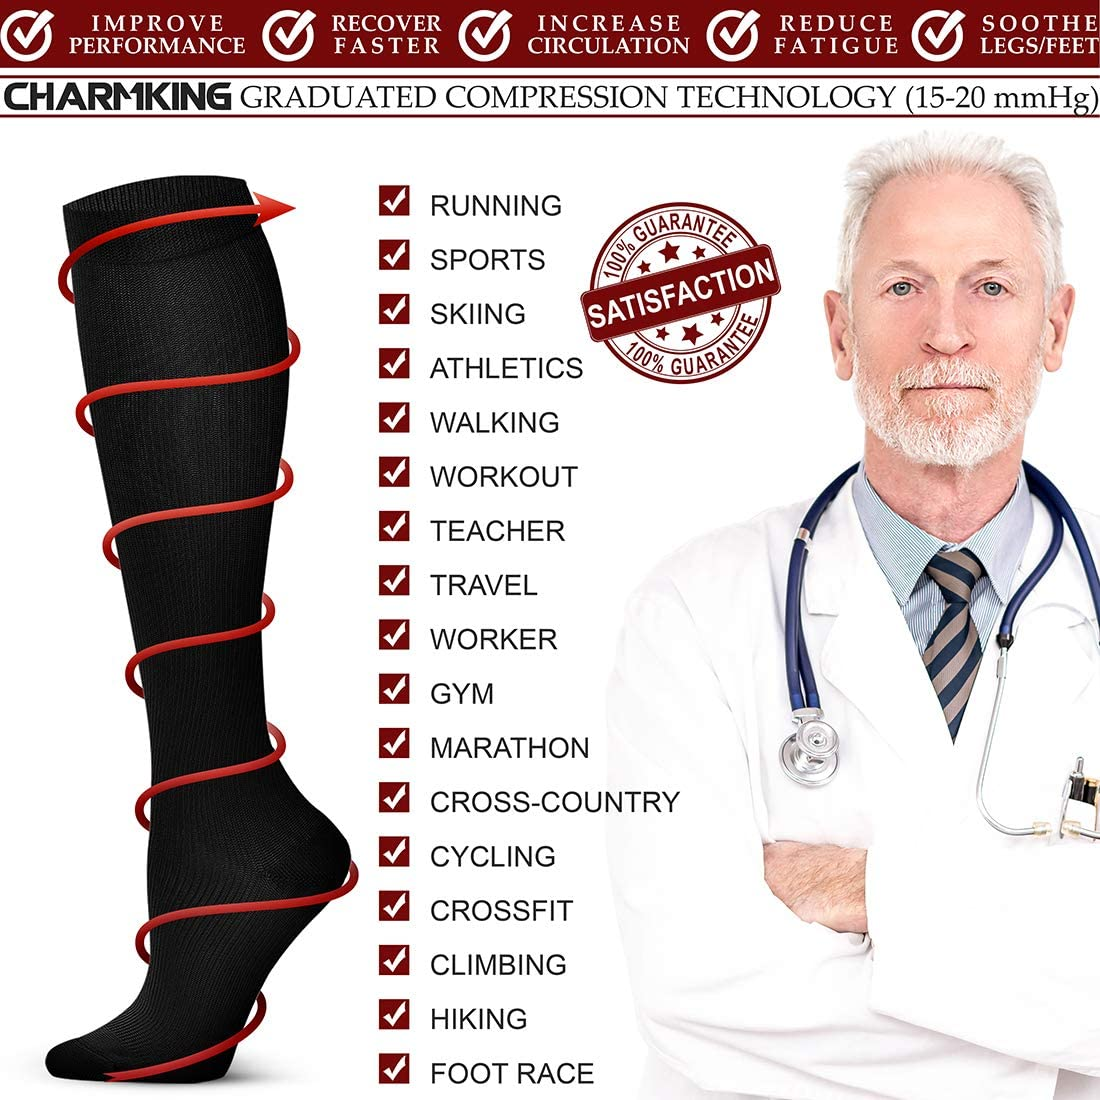 QUXIANG Compression Socks for Men and Women, Circulation (6 Pairs) - Best for Running Athletic Cycling 15-20 mmHg: Clothing